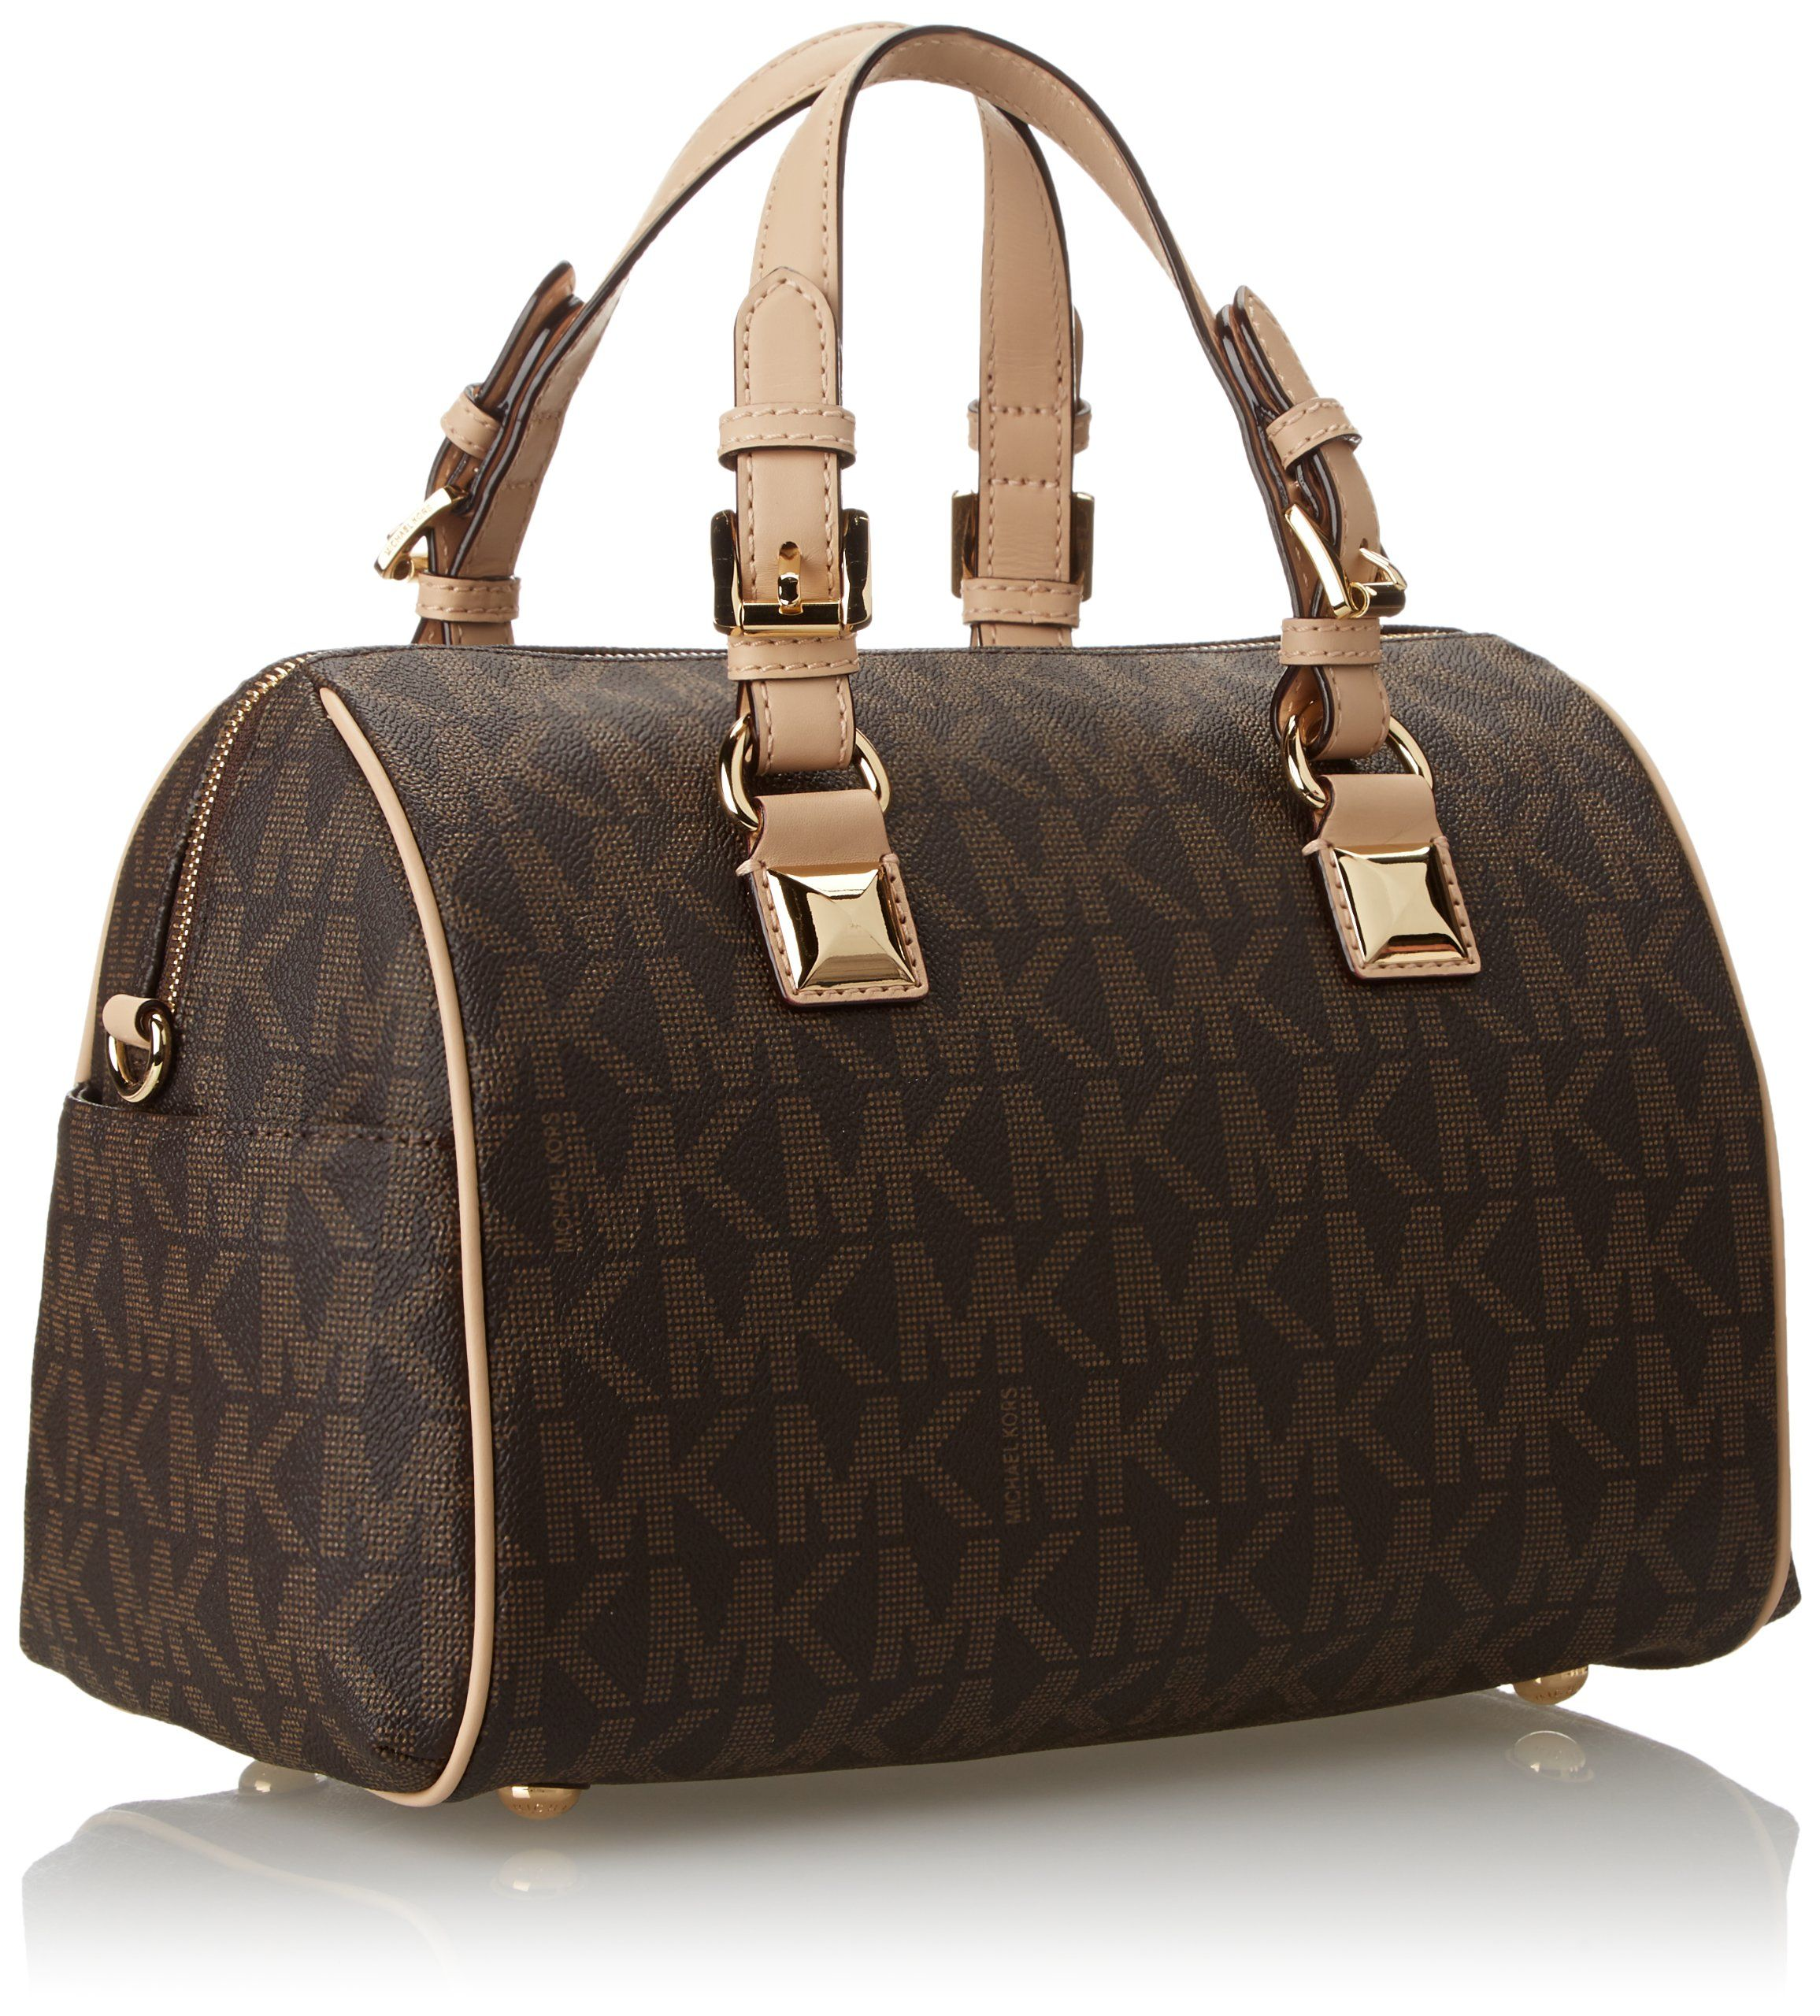 04c9e914110c Michael Kors Signature Print Satchel Handbag Bag 30F2GGCS2B Brown ...